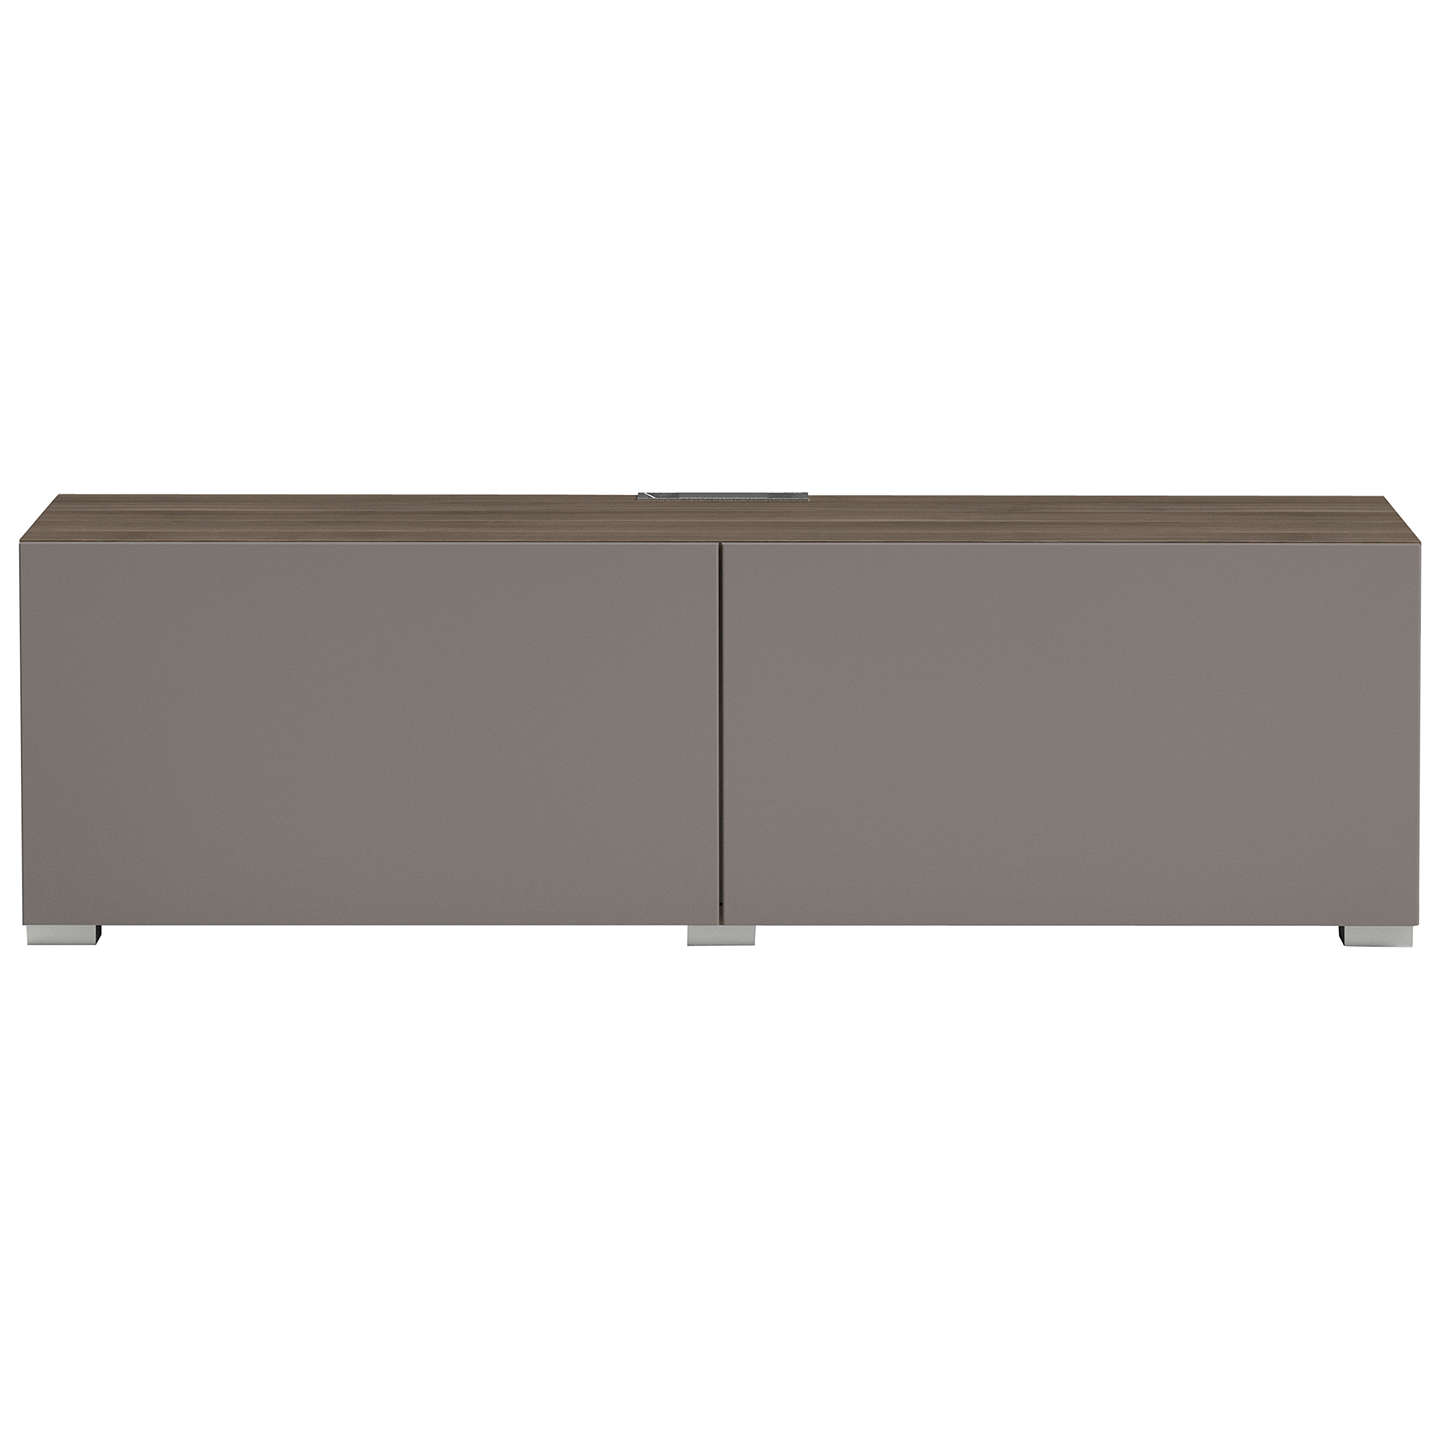 BuyHouse by John Lewis Mix it Media Unit - Ash frame / Mocha doors Online at johnlewis.com